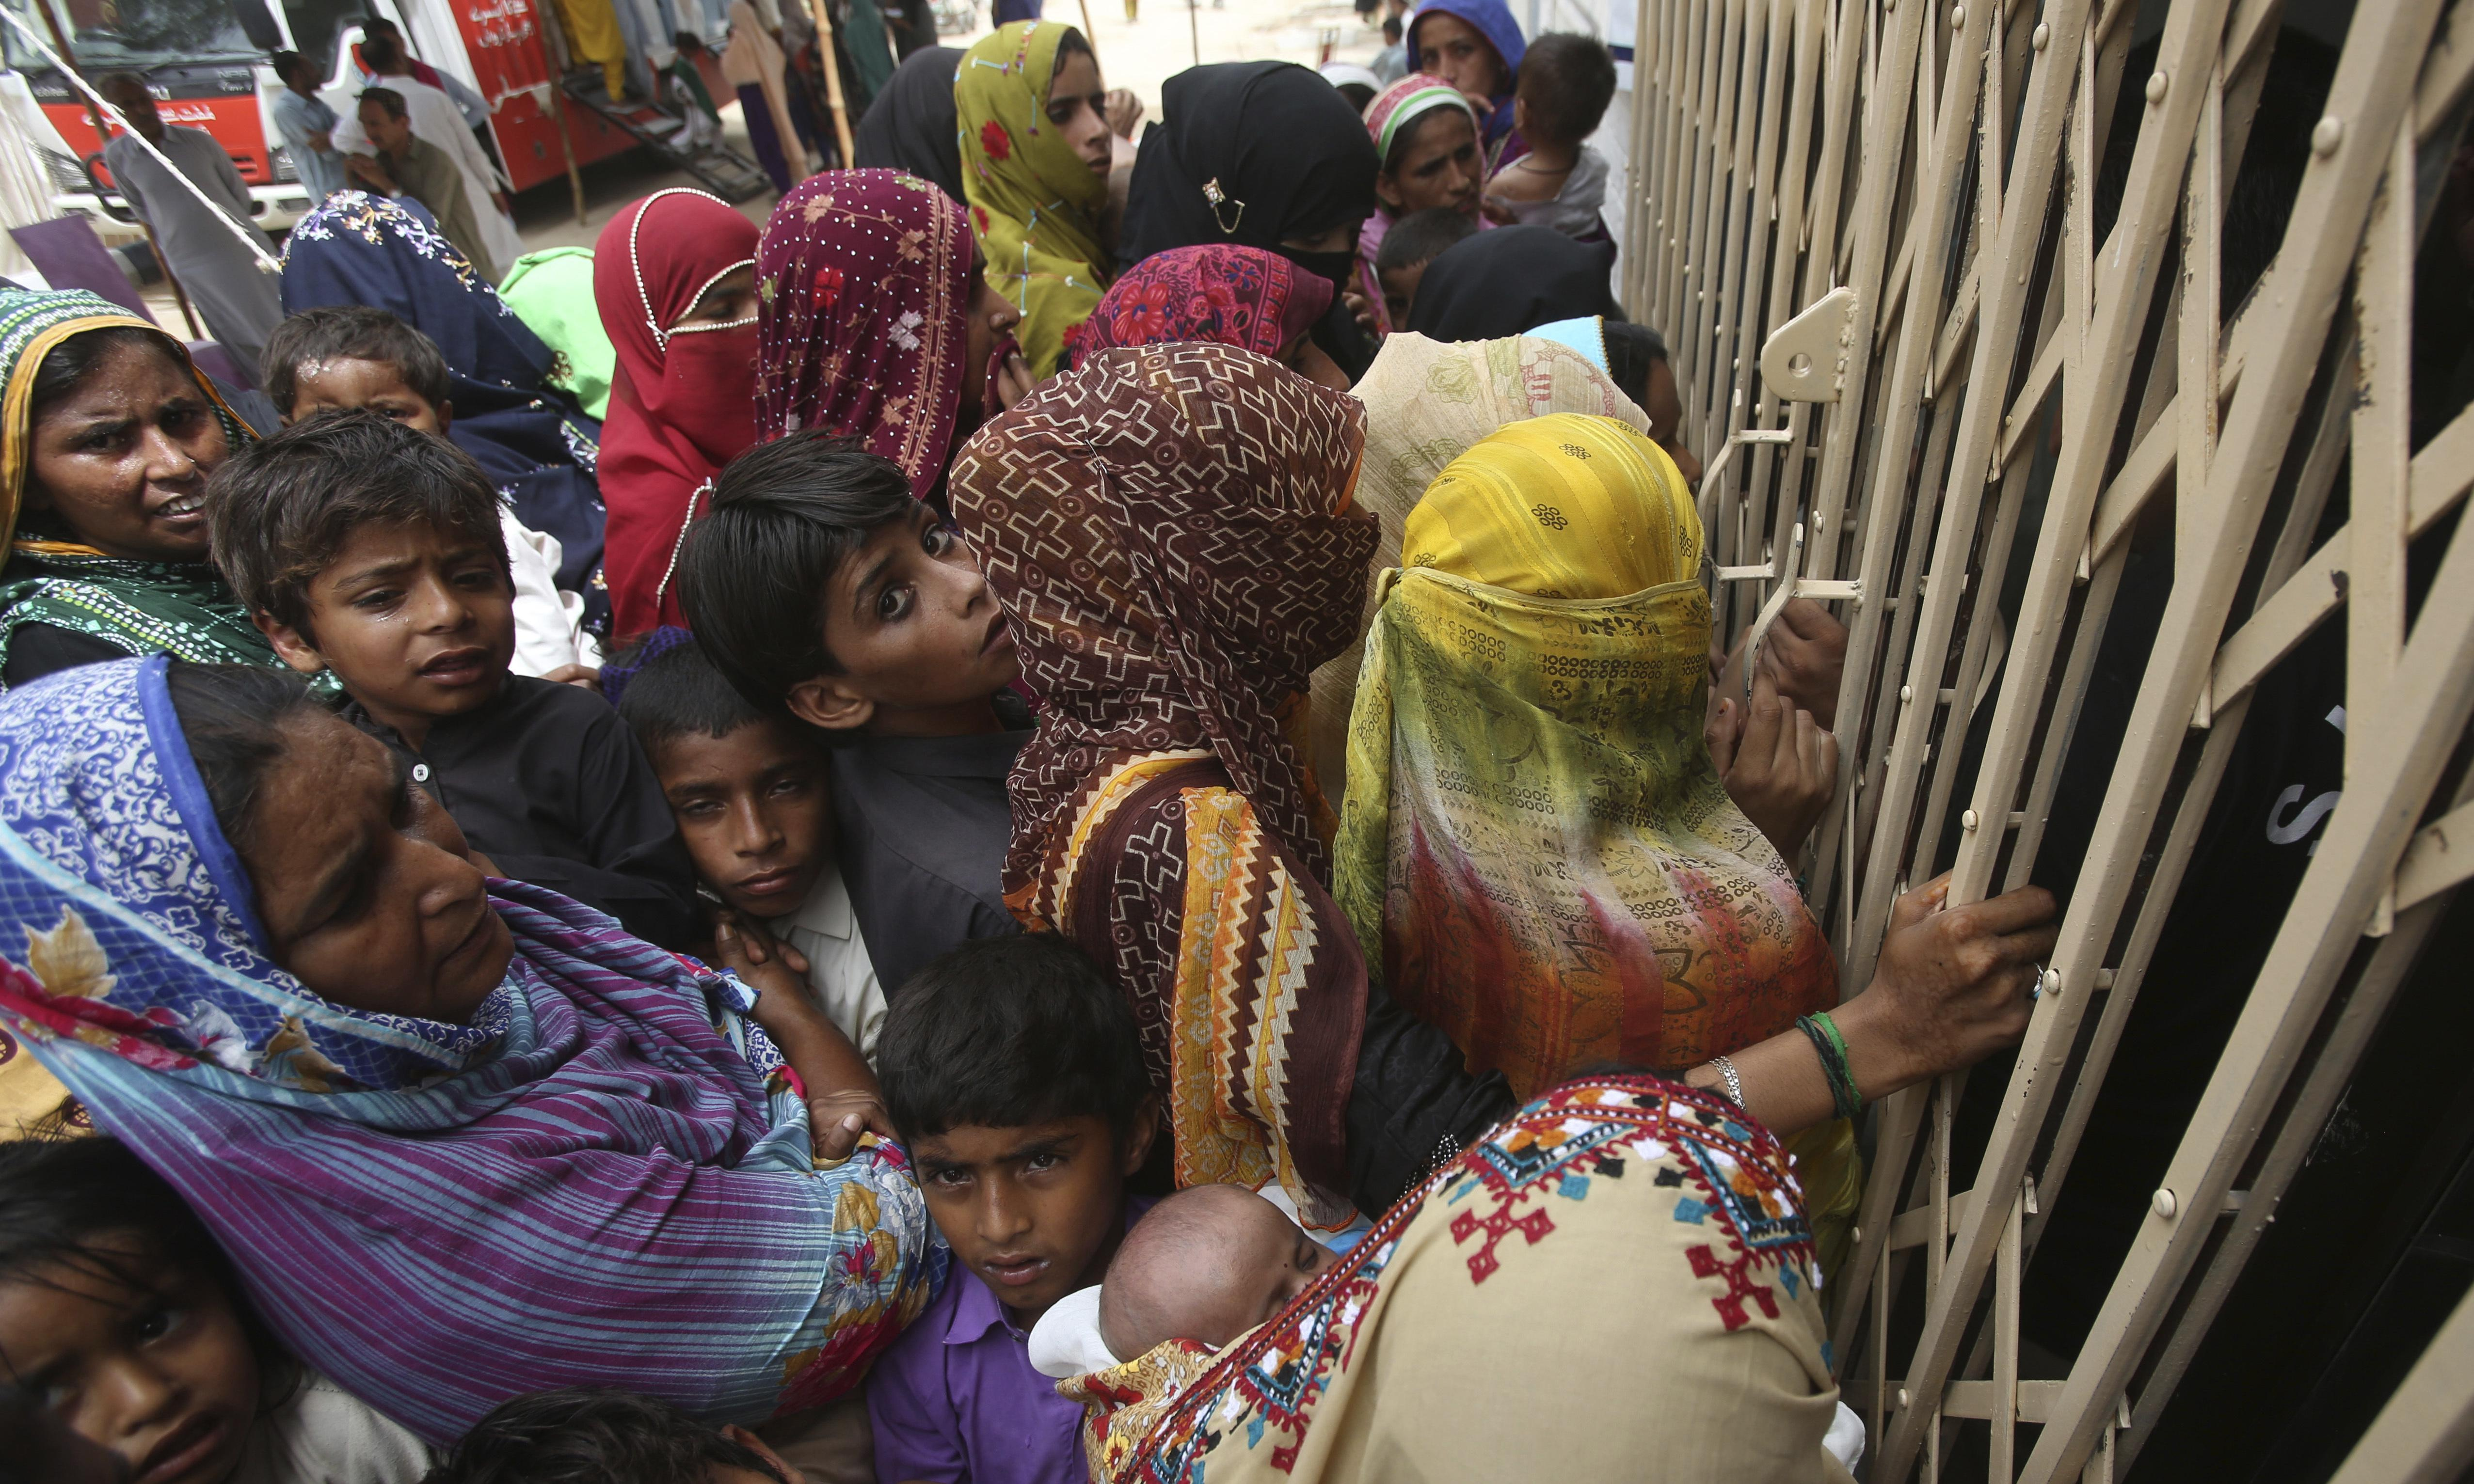 Pakistan doctor arrested after 400 children diagnosed with HIV